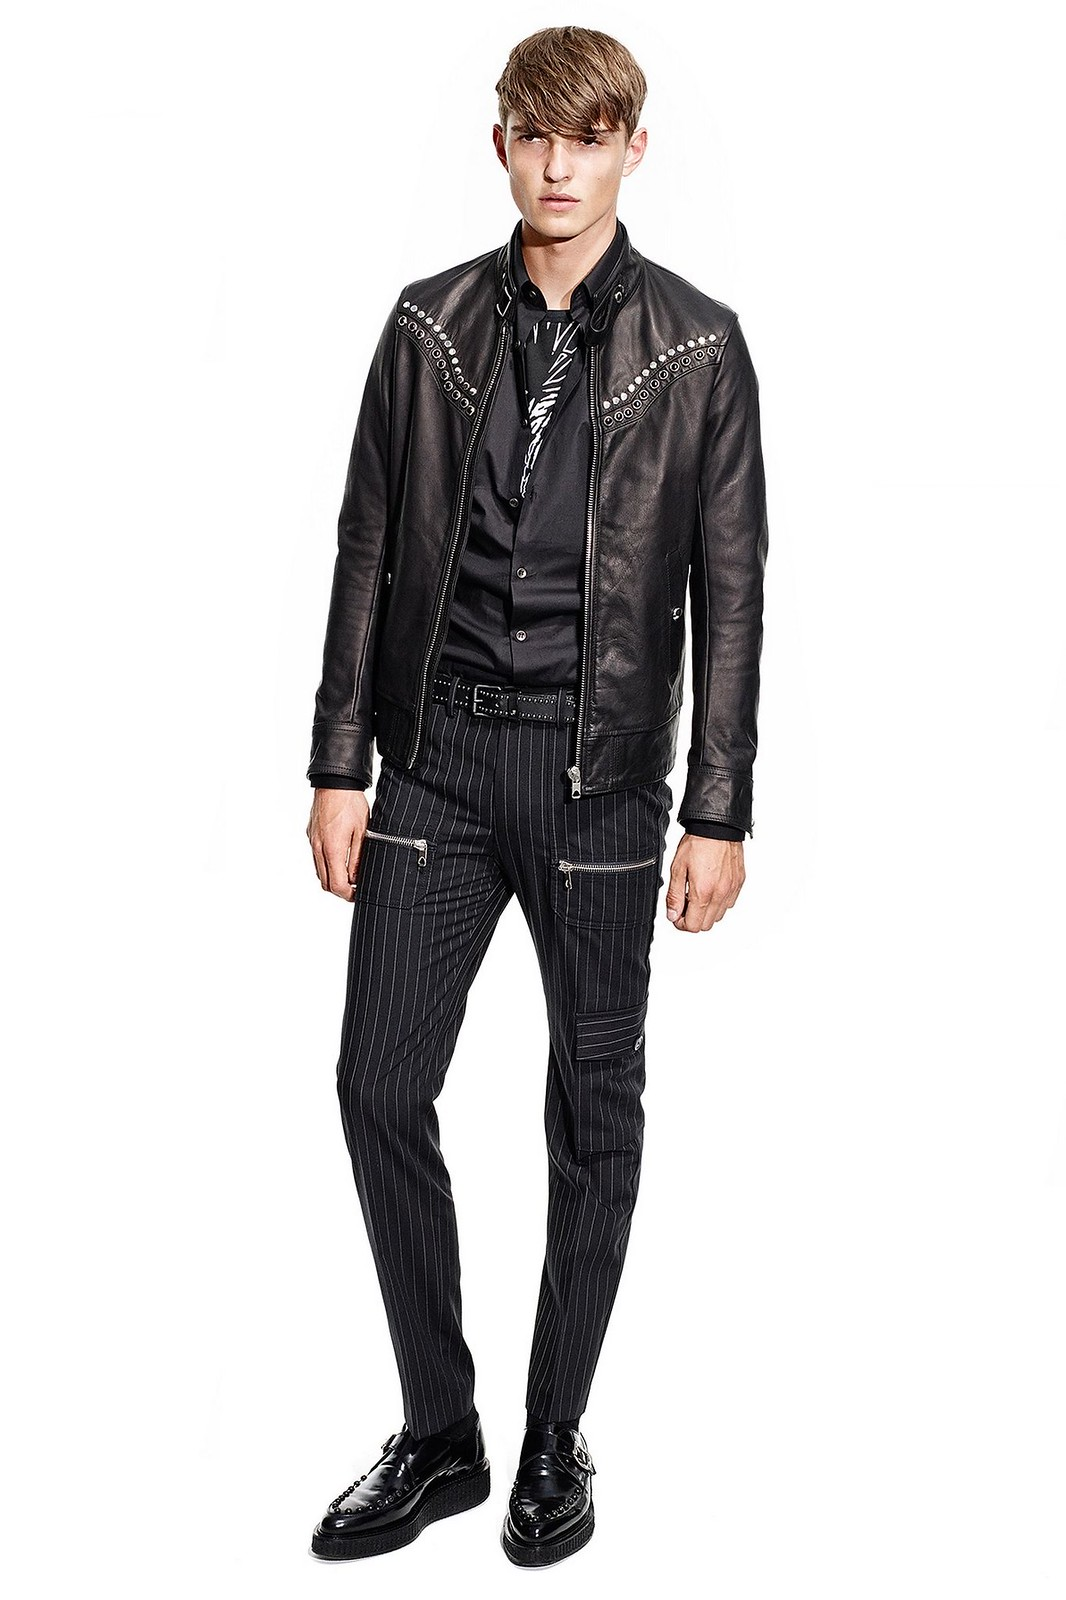 Guerrino Santulliana0003_AW14 DIESEL BLACK GOLD